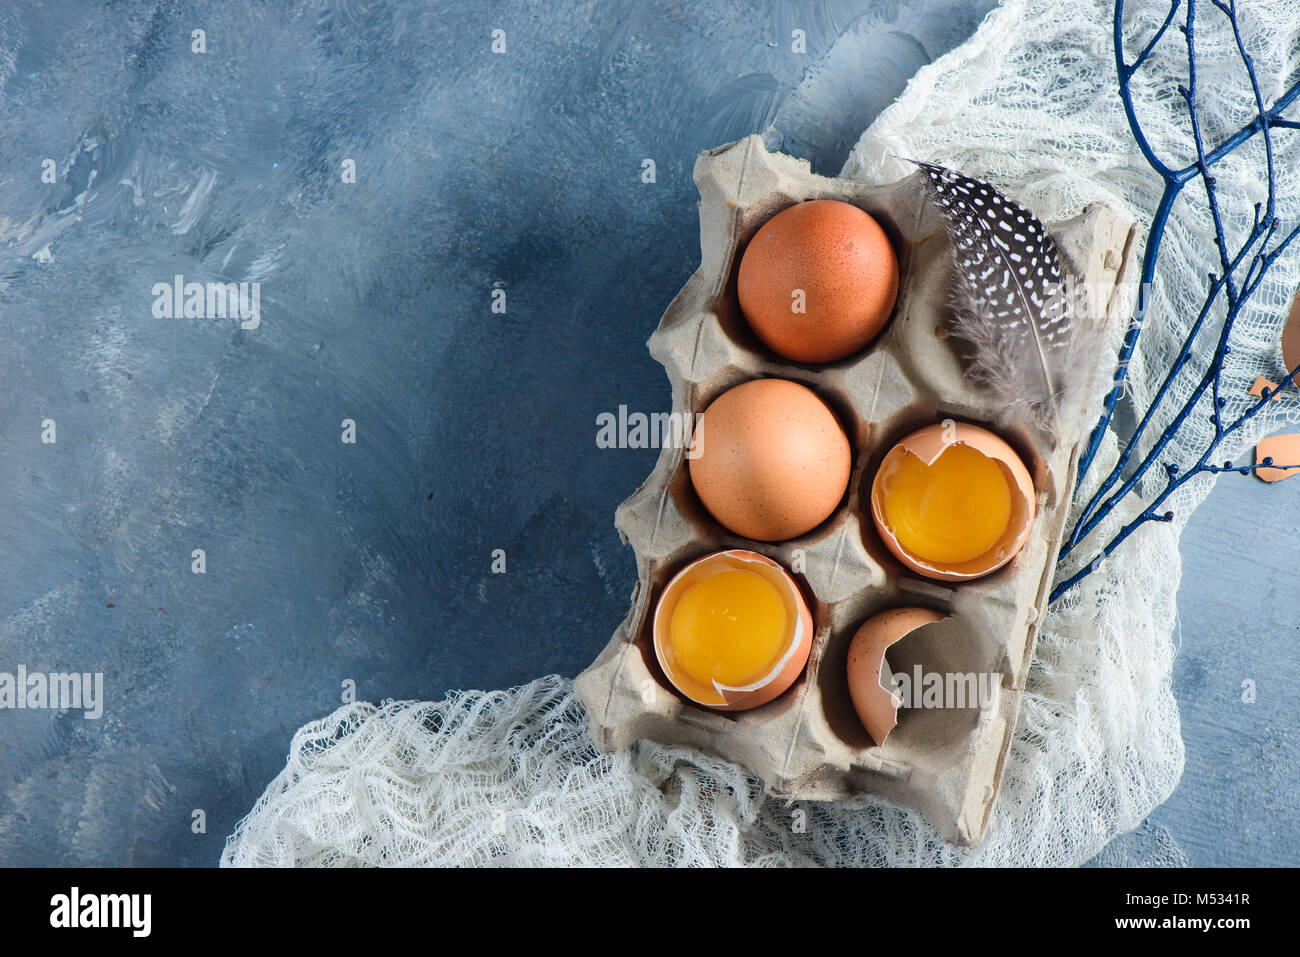 Easter decorations concept with fresh eggs in a carton, tree branches and cloth runner on a concrete background. - Stock Image